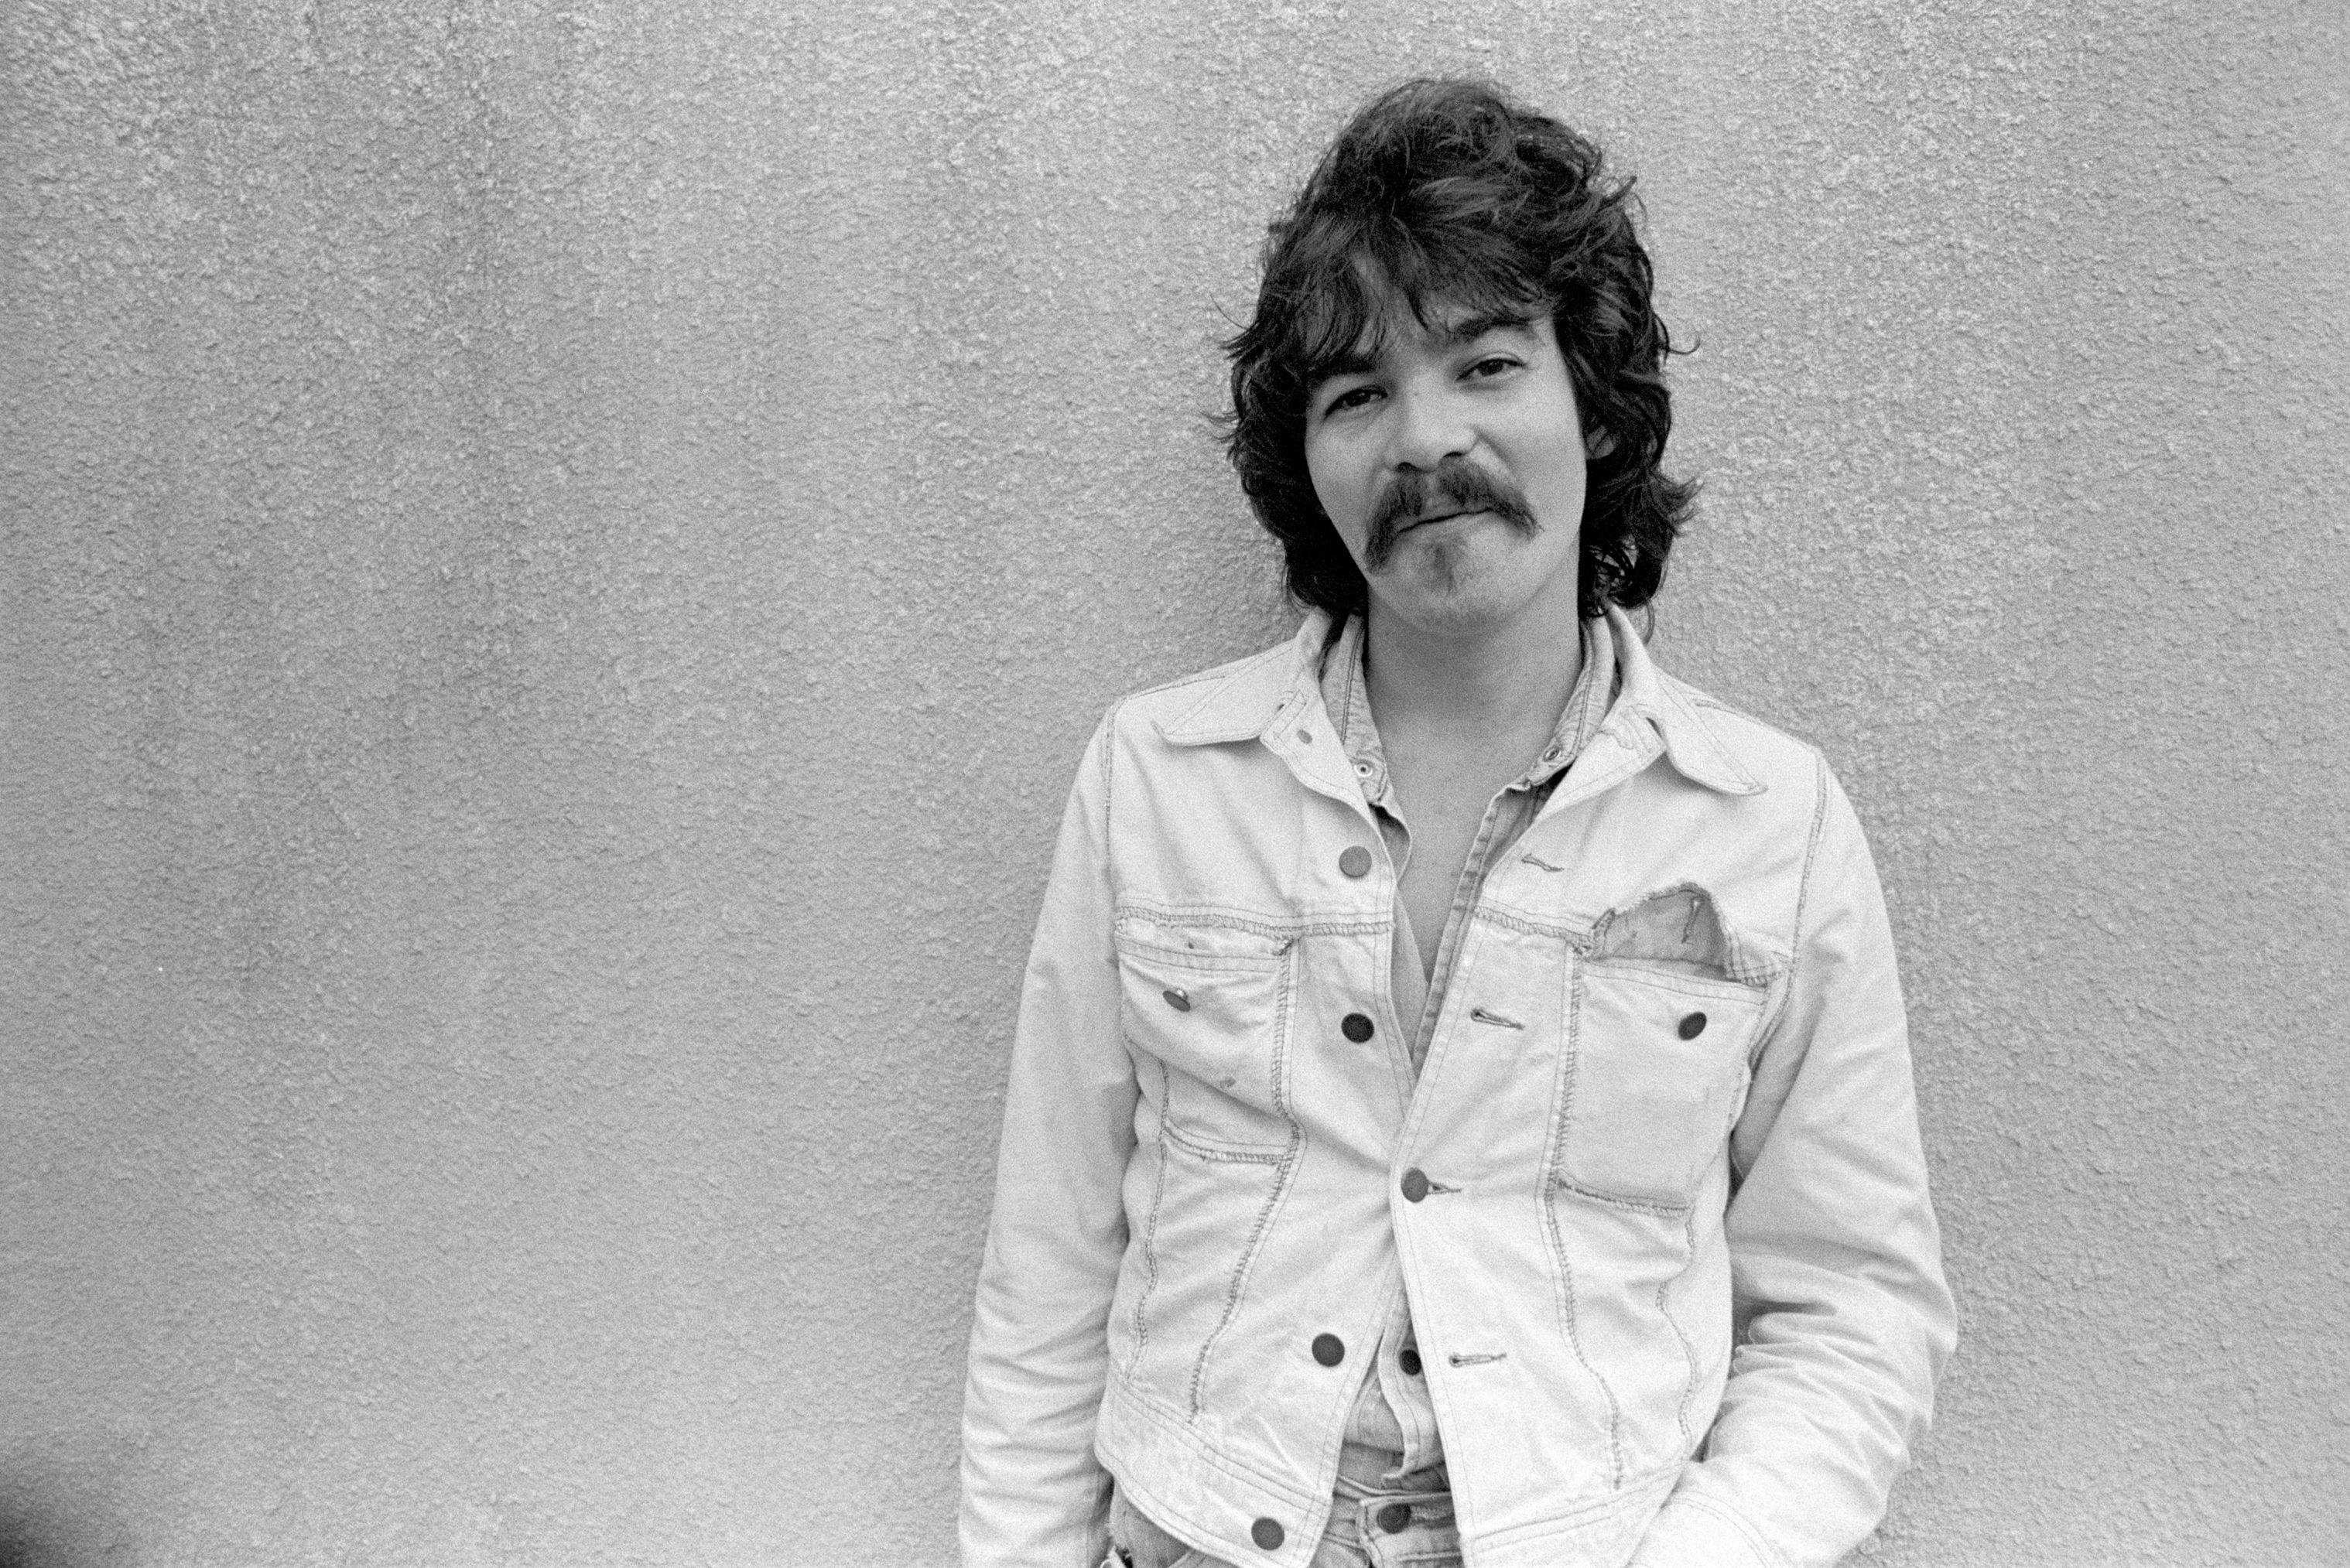 John Prine Was Always There. The World Didn't Know How Lucky It Was.